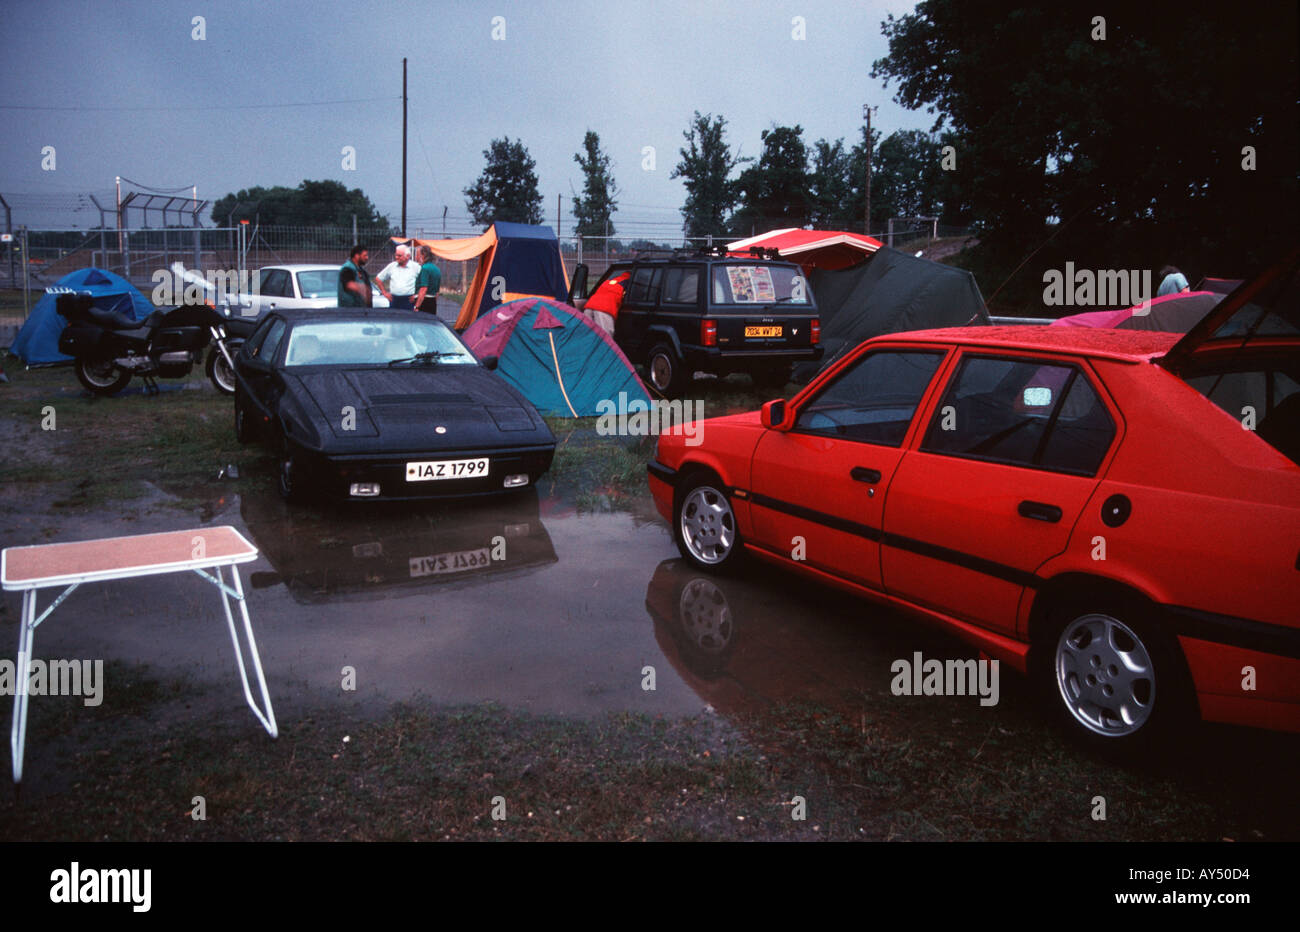 Flooded campsite after a rain storm at the 1998 Le Mans 24 hour sports car race - Stock Image